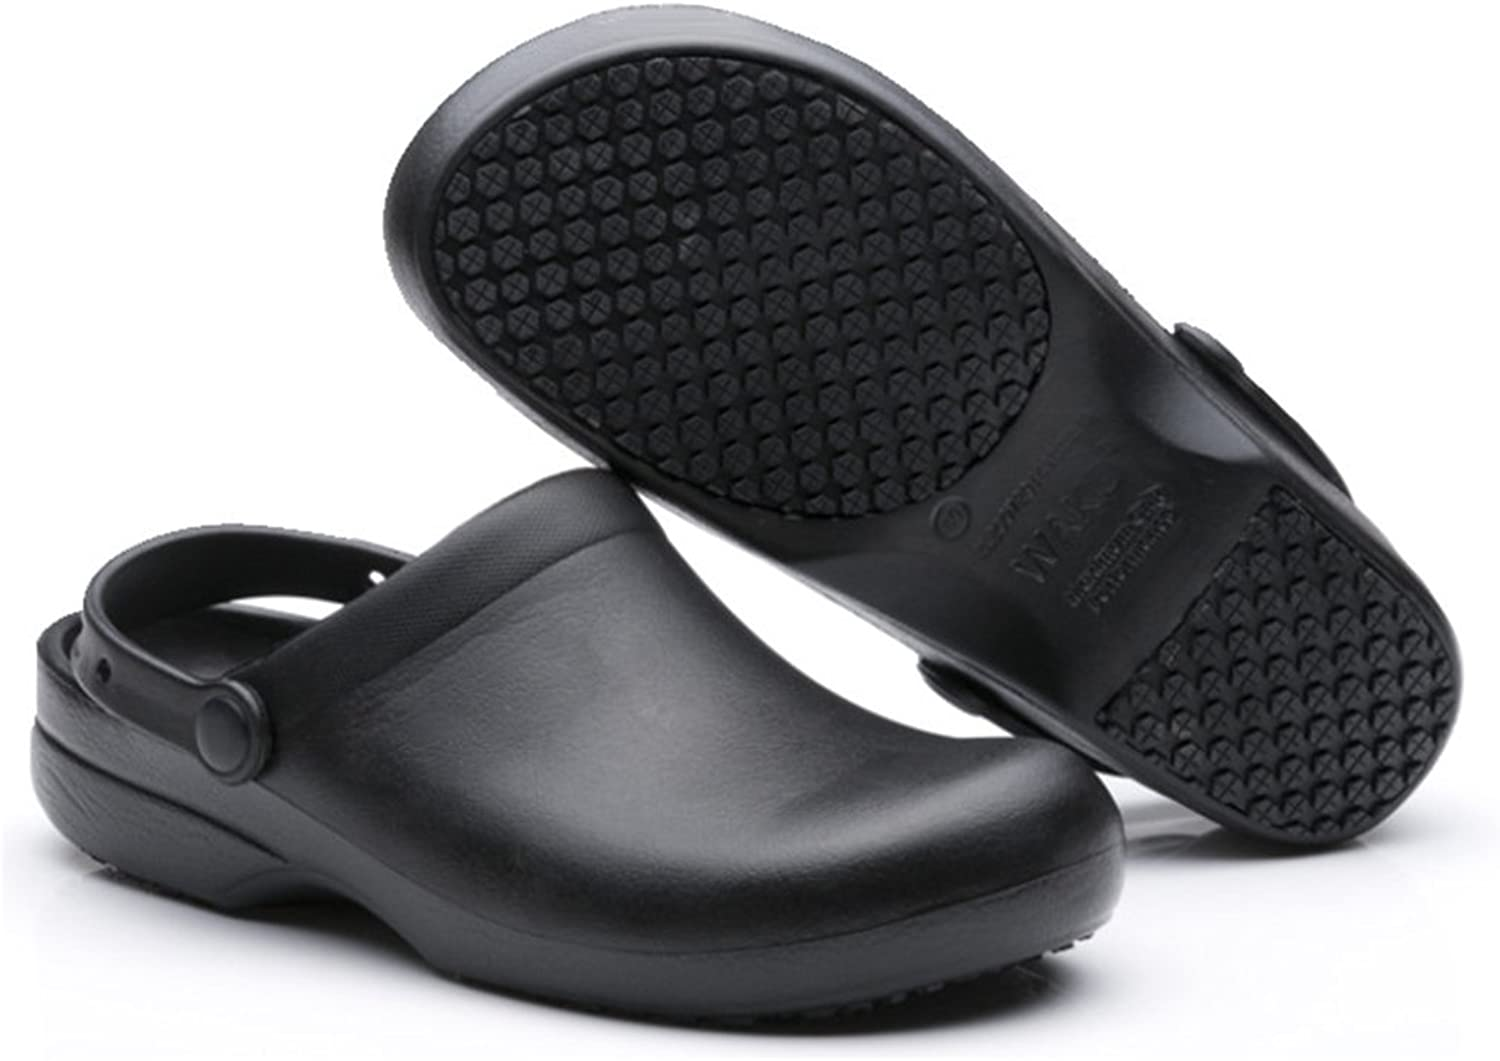 EASTSURE Work Clog Unisex Slip Resistant Kitchen shoes Black for Nurse Chef